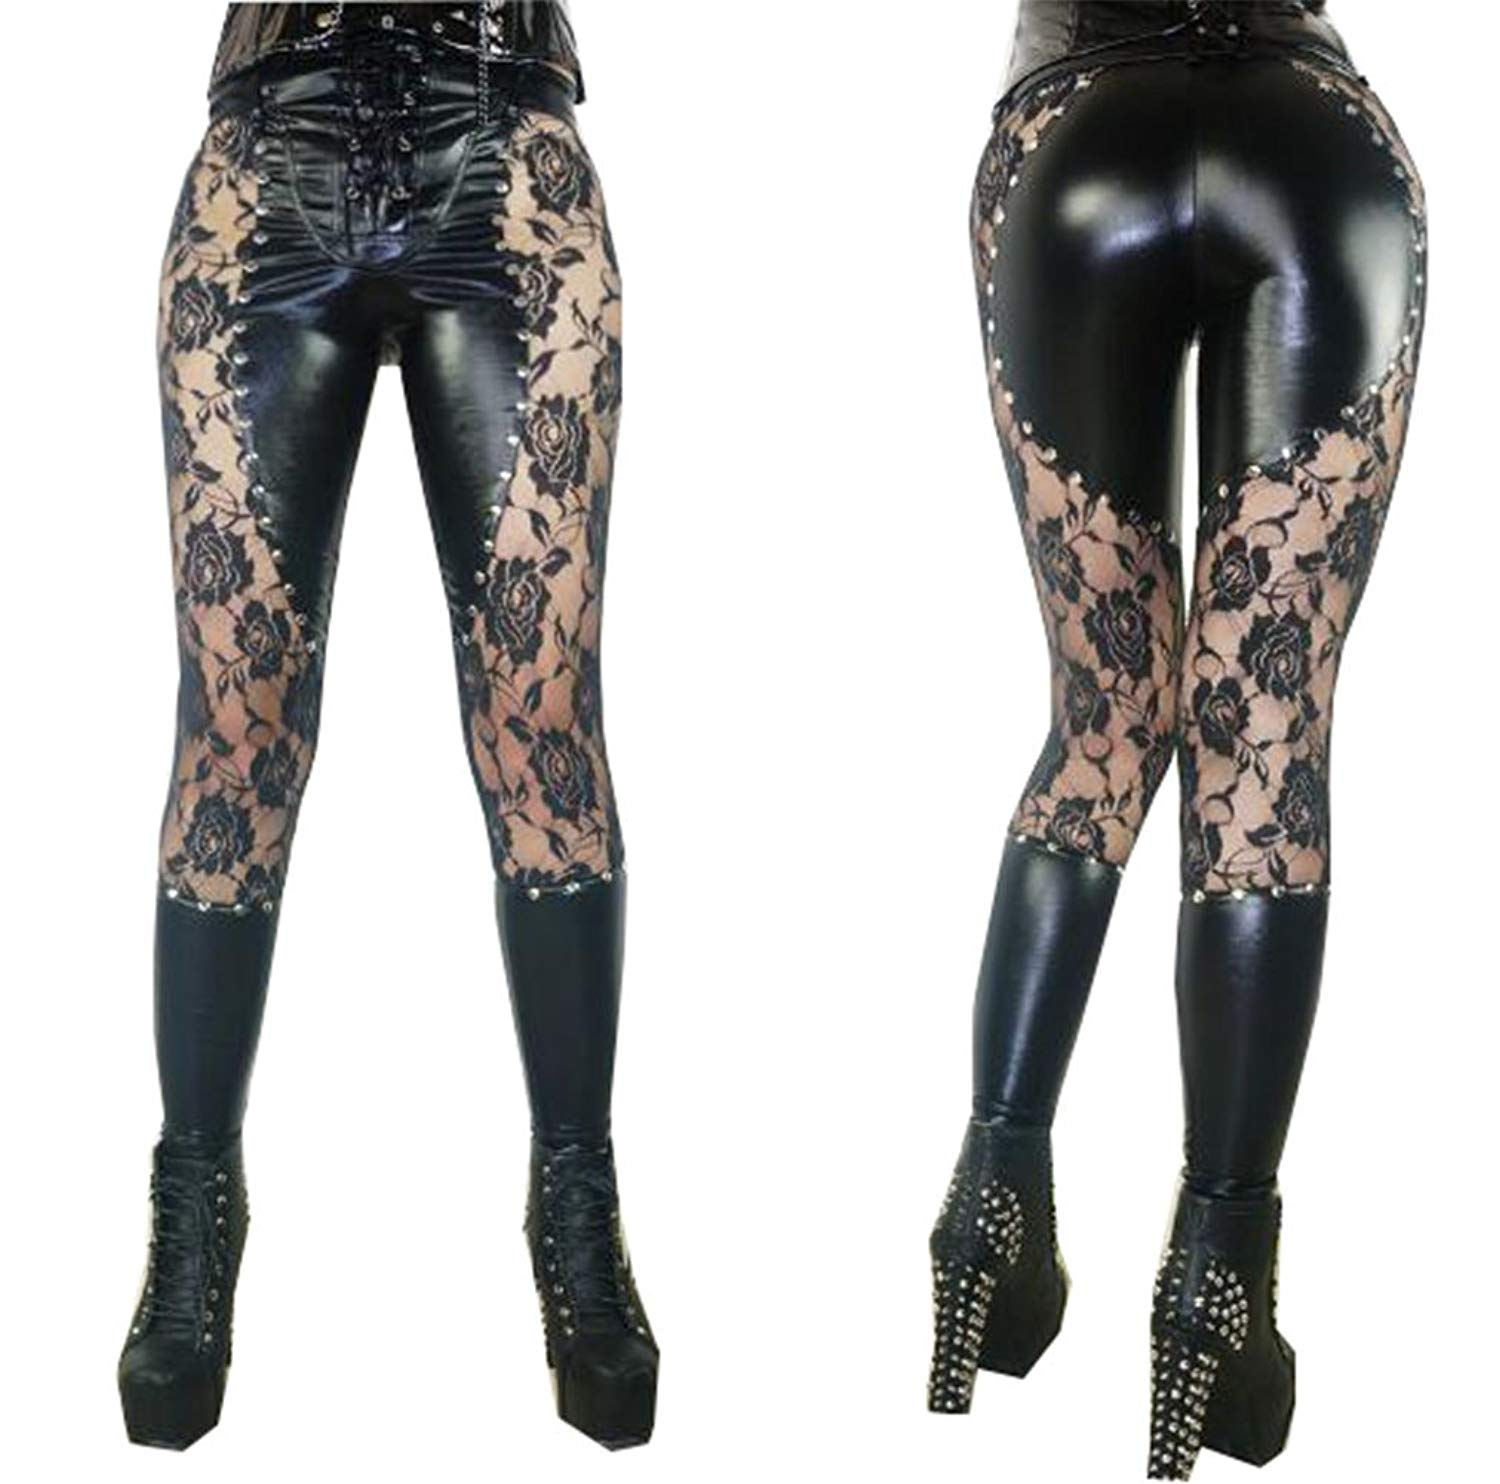 e4947ed76a6 Evalent Women Sexy Lace Faux Leather Wetlook Bodysuit Hollow Up Pants  Clubwear Leggings